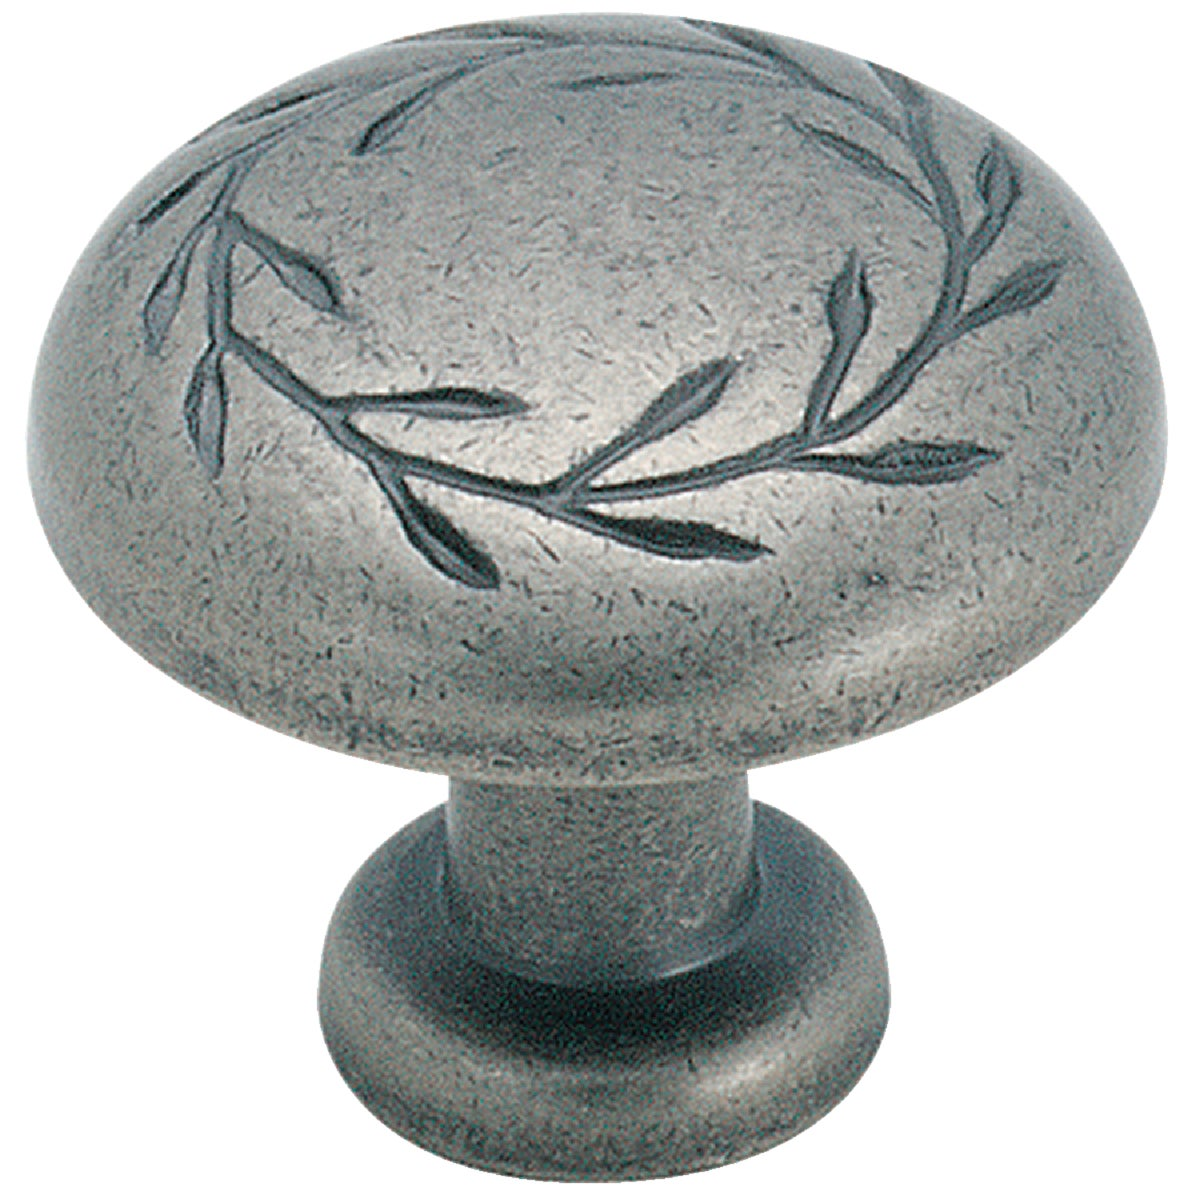 WEATHERED NICKEL KNOB - BP1581-WN by Amerock Corporation